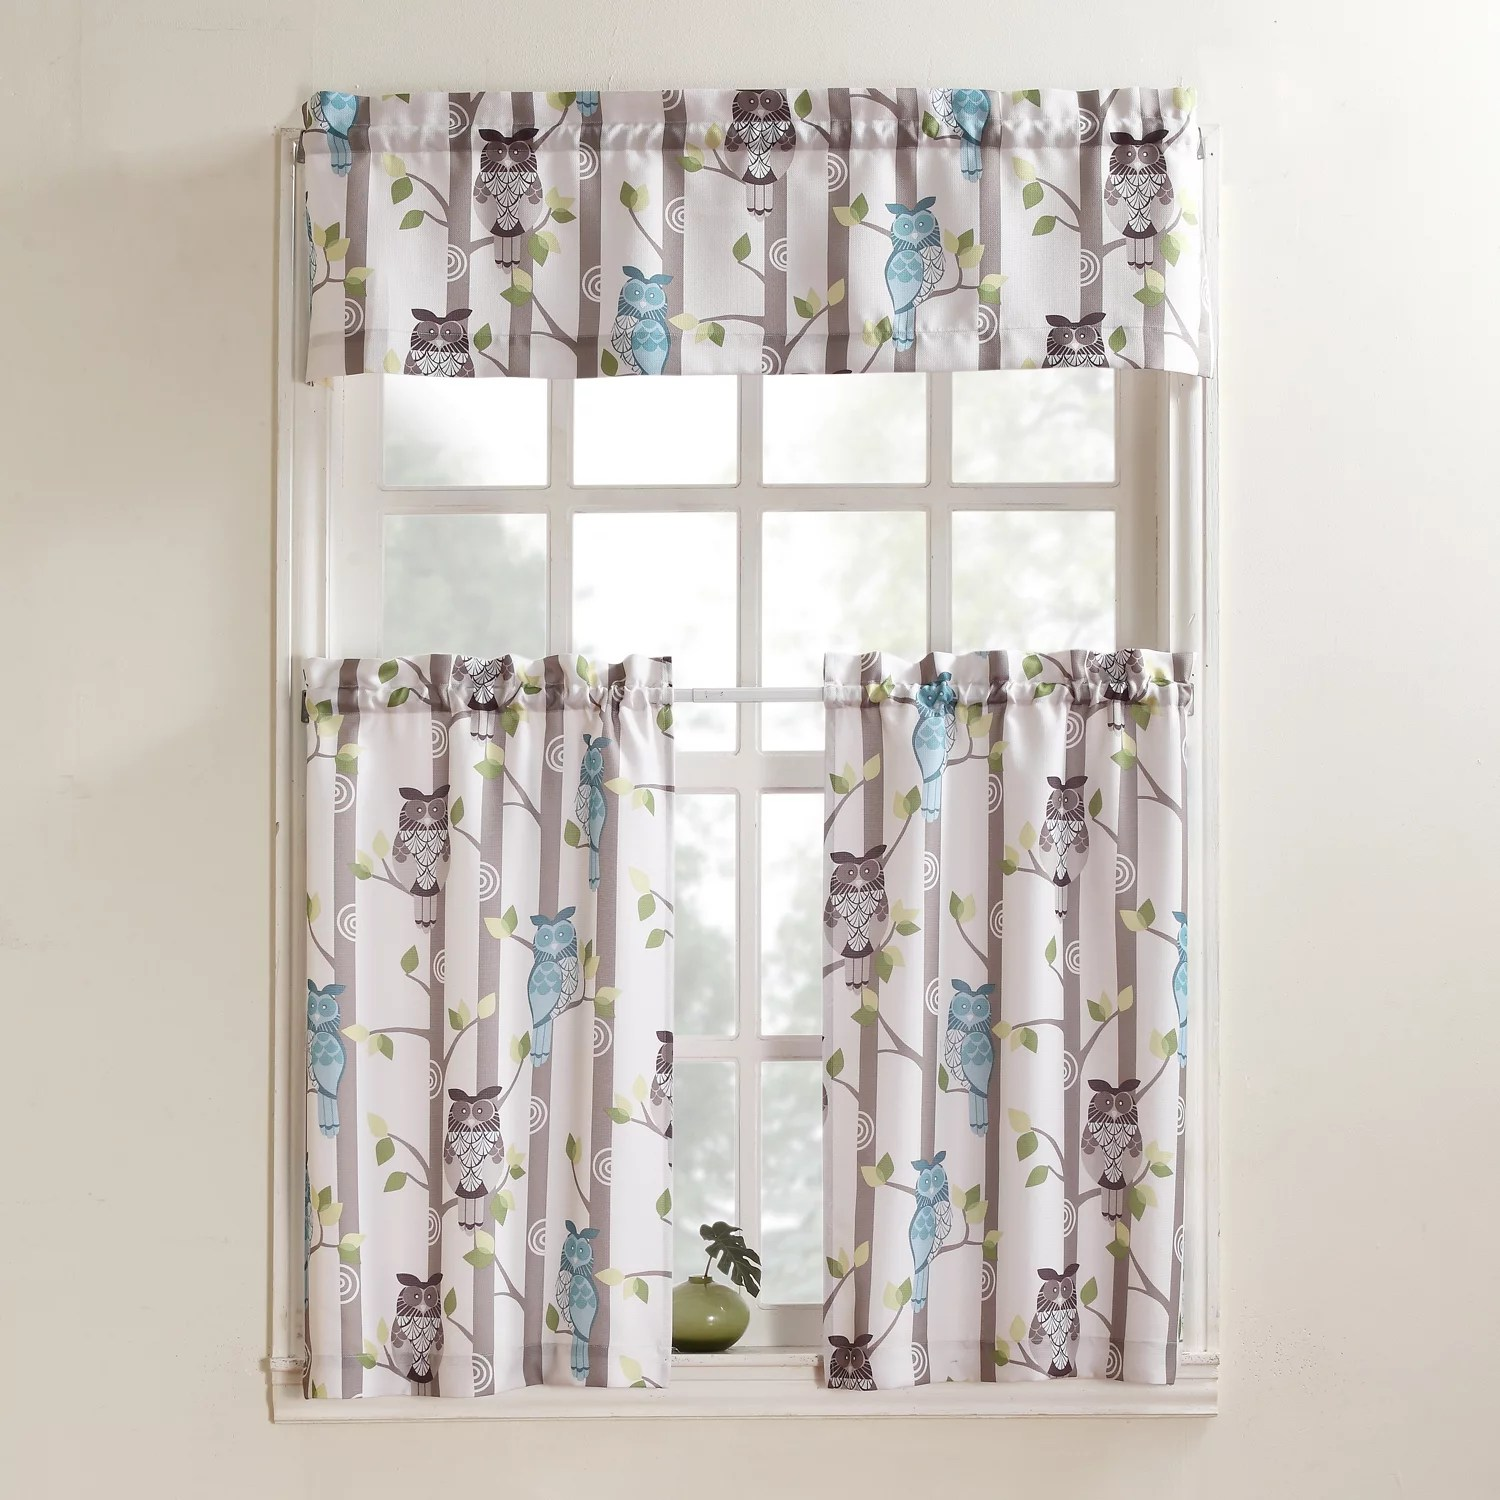 kitchen curtains kohls best tile for no918 drapes window treatments home decor kohl s no 918 hoot owl tier